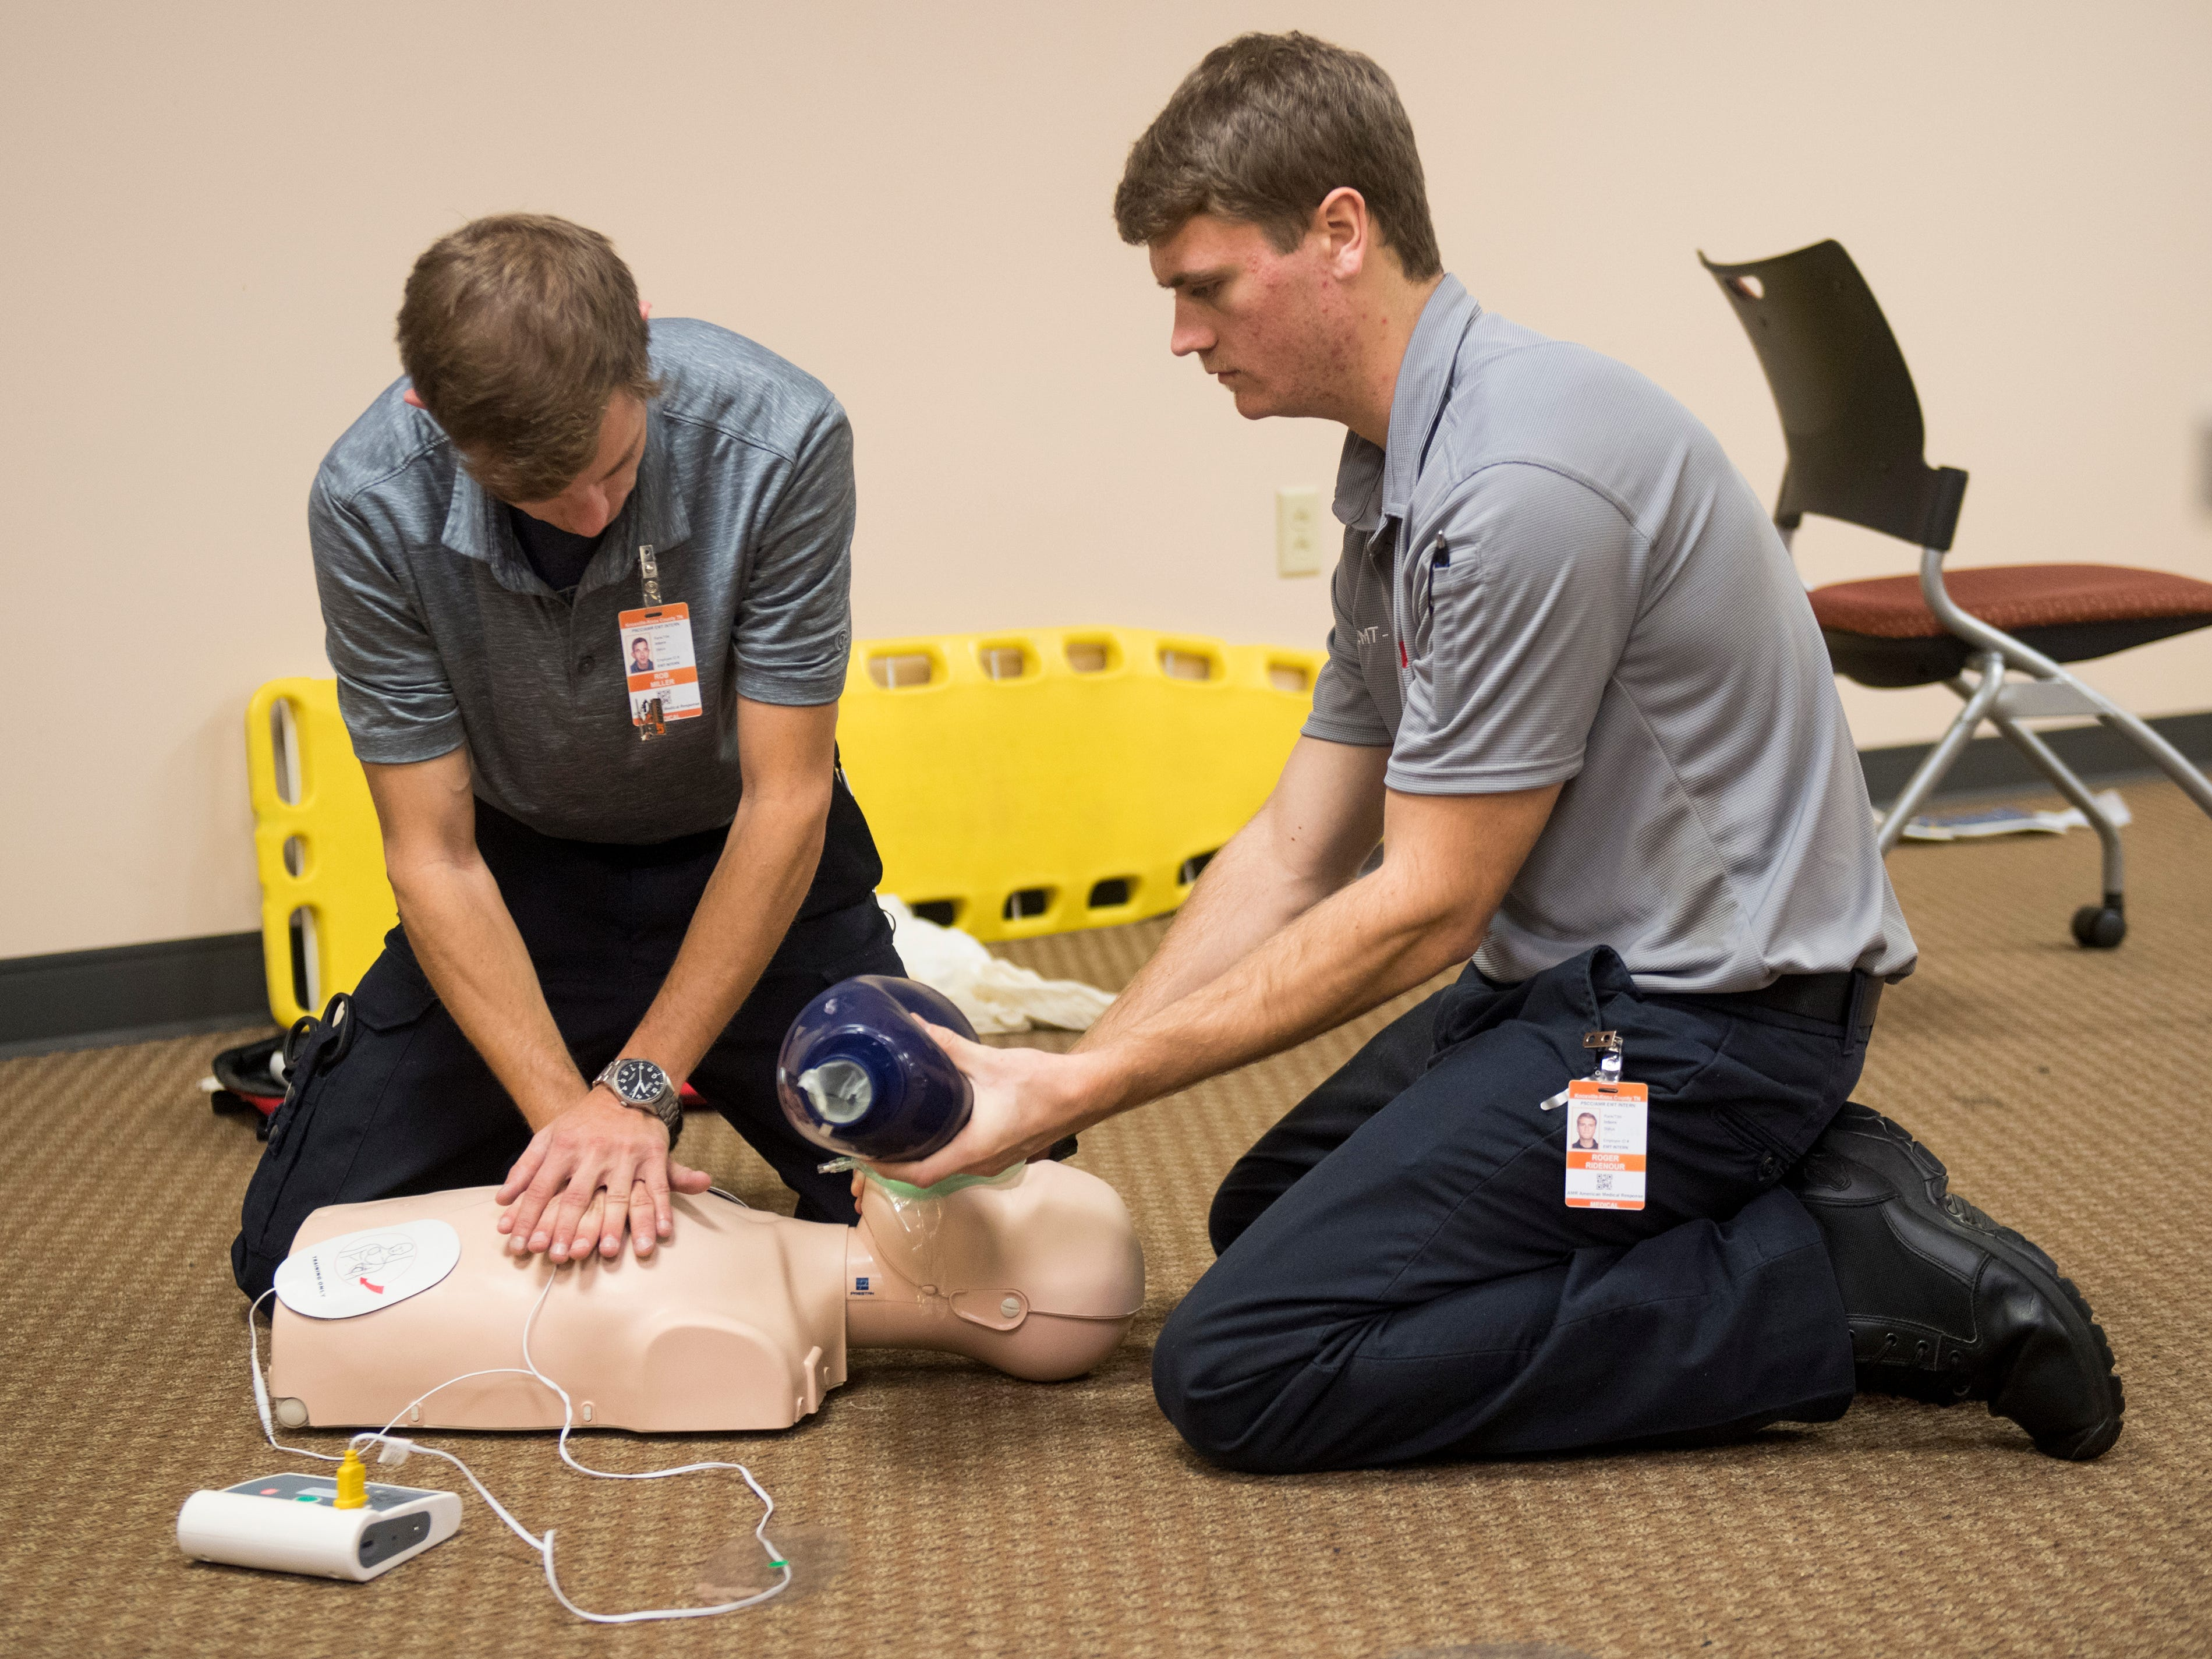 EMT interns Rob Miller, left, and Roger Ridenour, right, practice CPR on a patient experiencing cardiac arrest during a cooperative class between AMR and Pellissippi State on Monday, December 3, 2018.